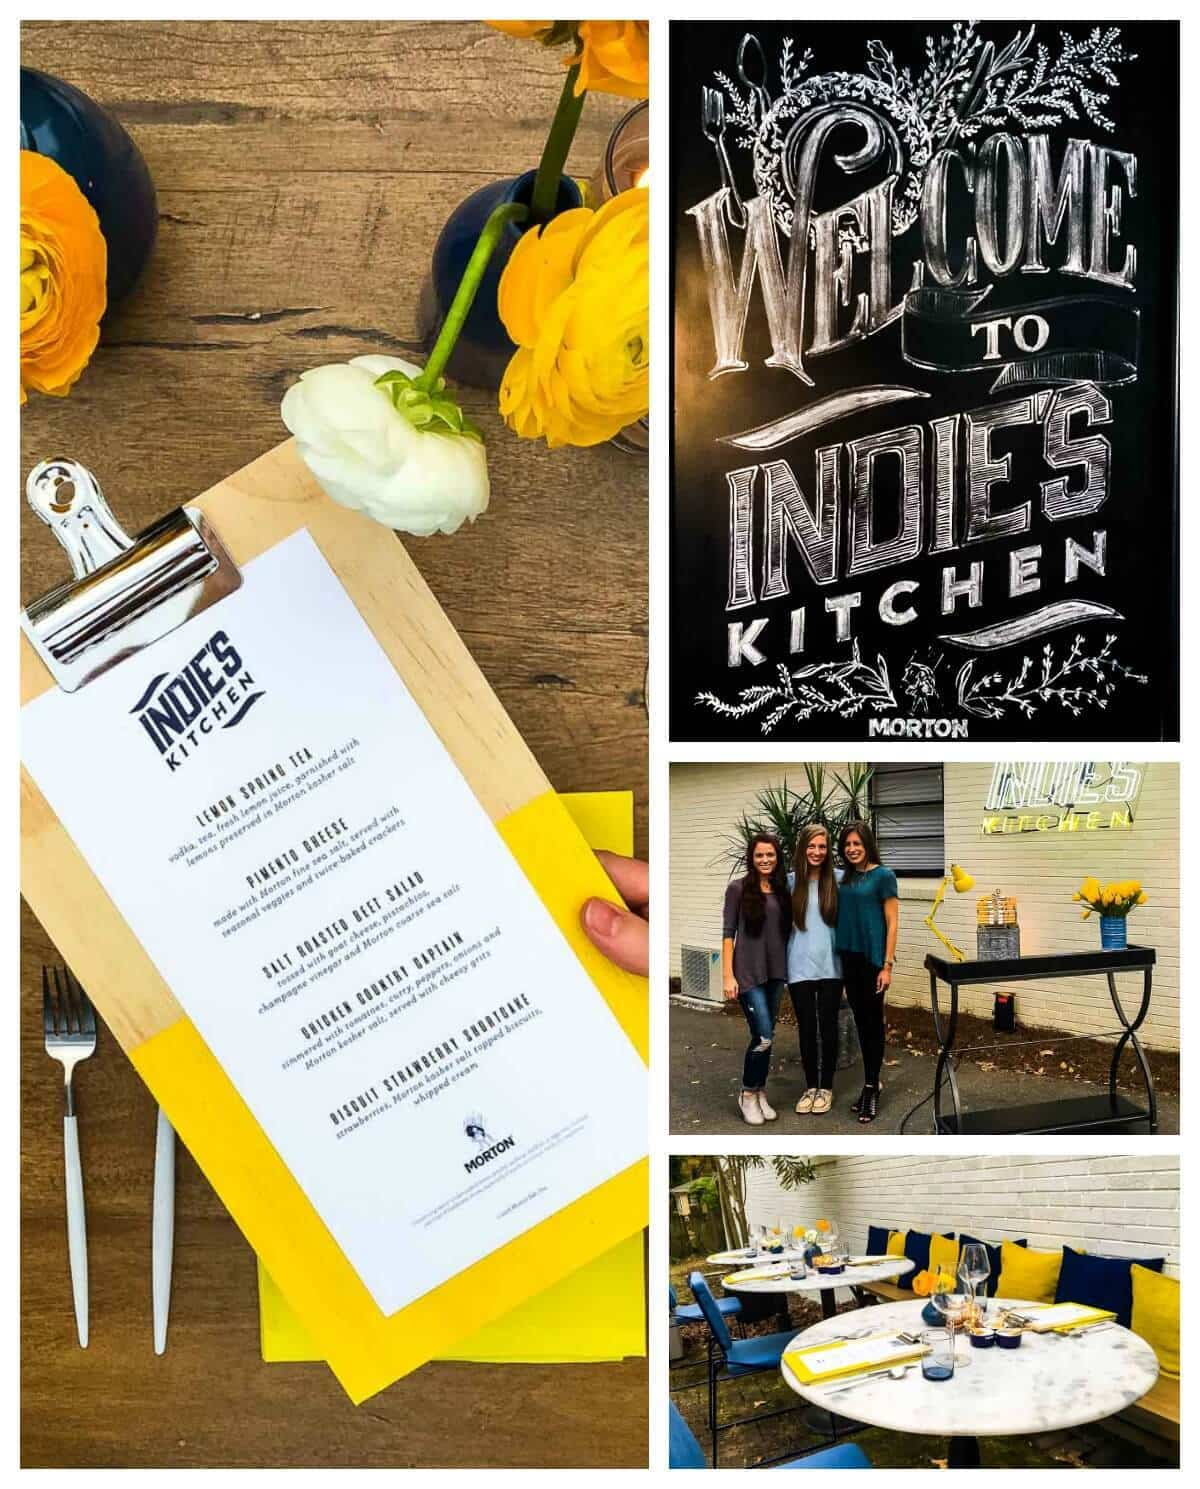 Nashville Chef Next Door Experience with Morton Salt